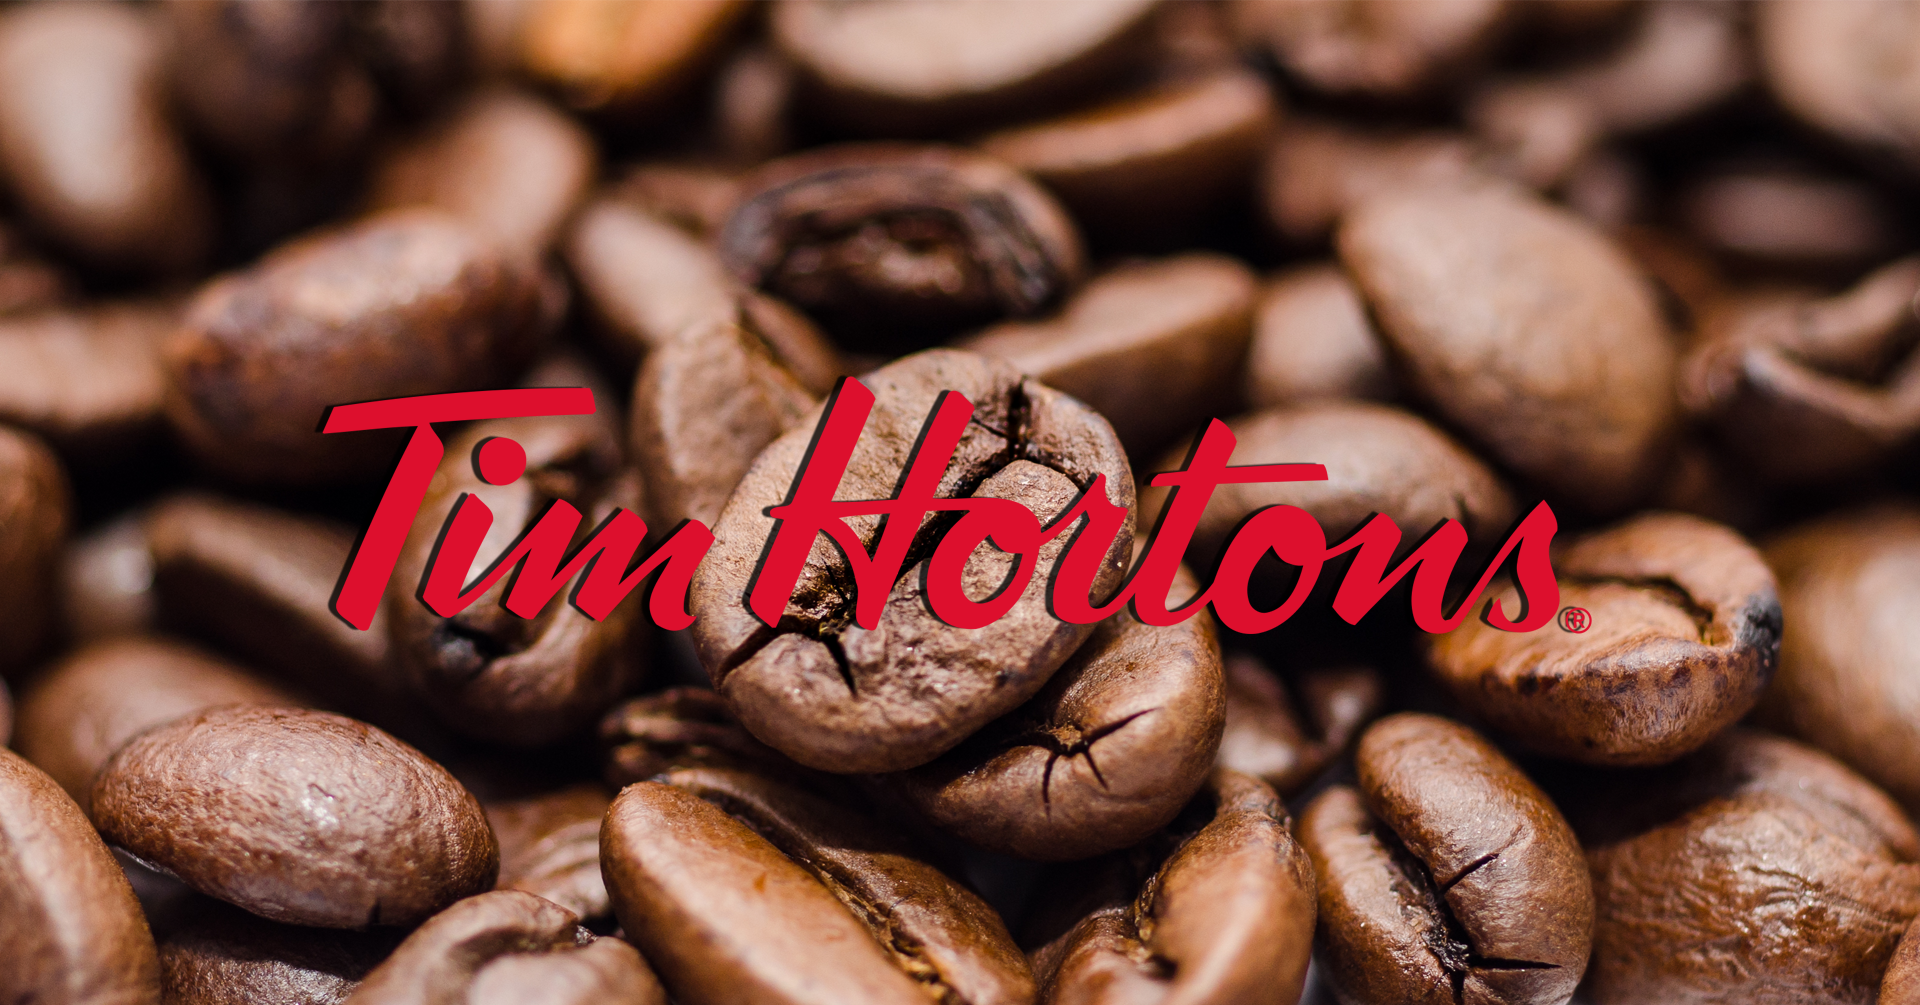 Tim Hortons / Calling All Details